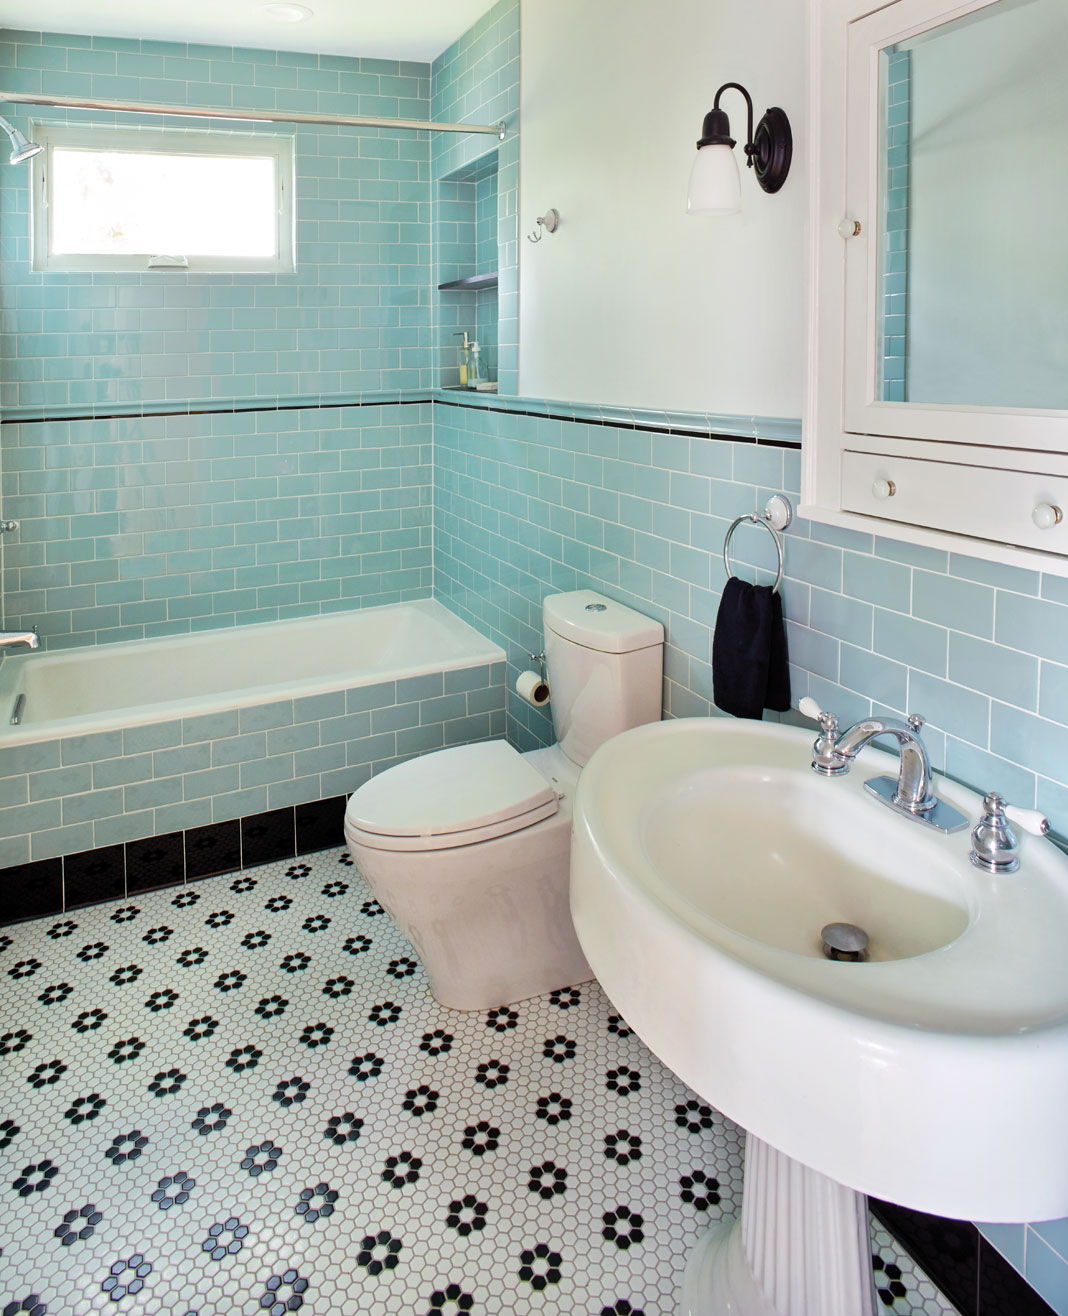 A newly-renovated master bath featuring pale blue subway tile walls.